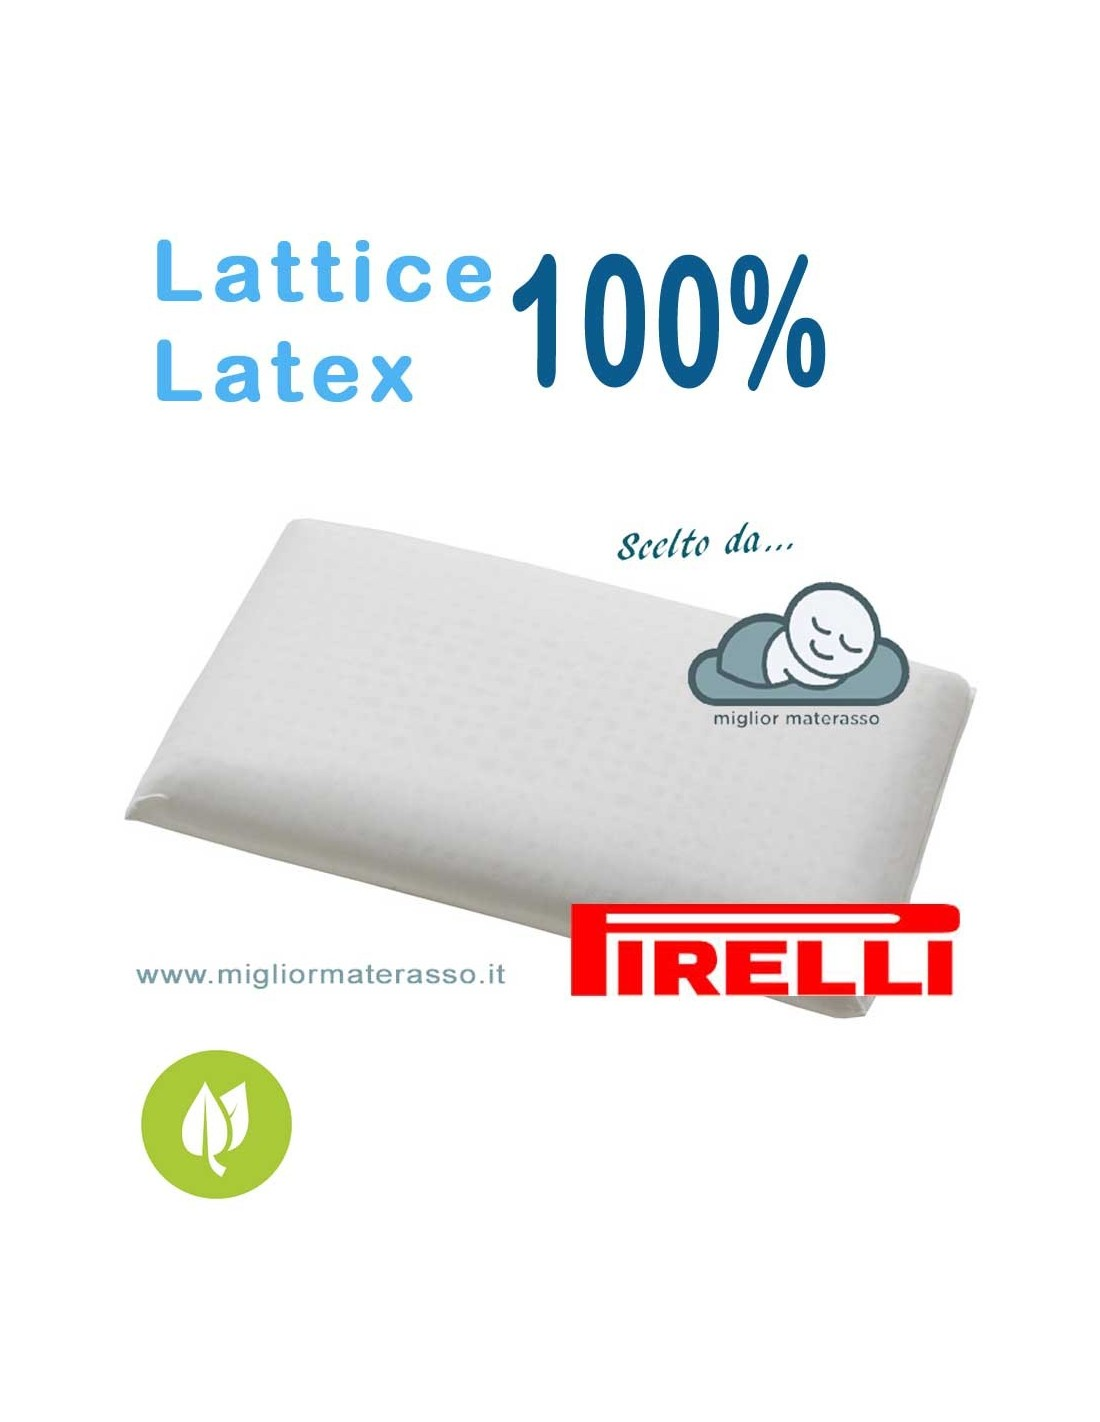 Cuscini lattice Pirelli miglior prezzo acquista on-line